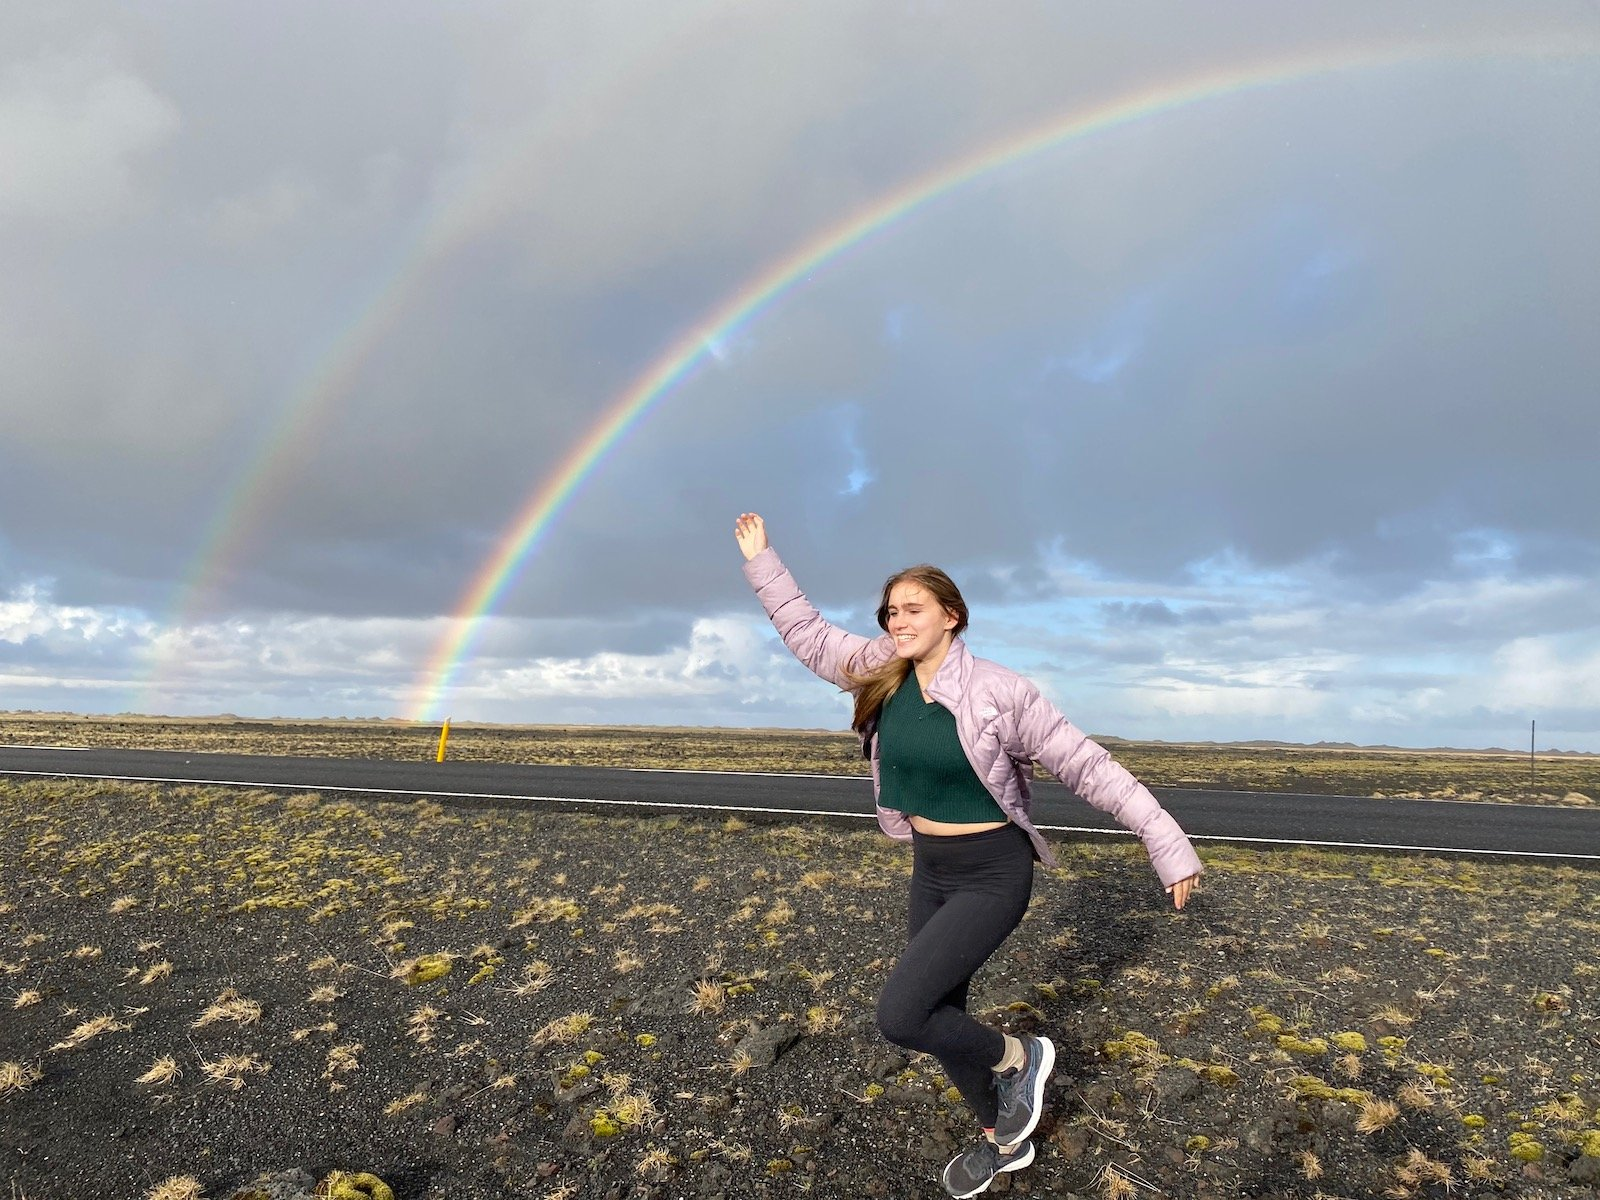 Teen girl in field with double rainbow in the background in Iceland.